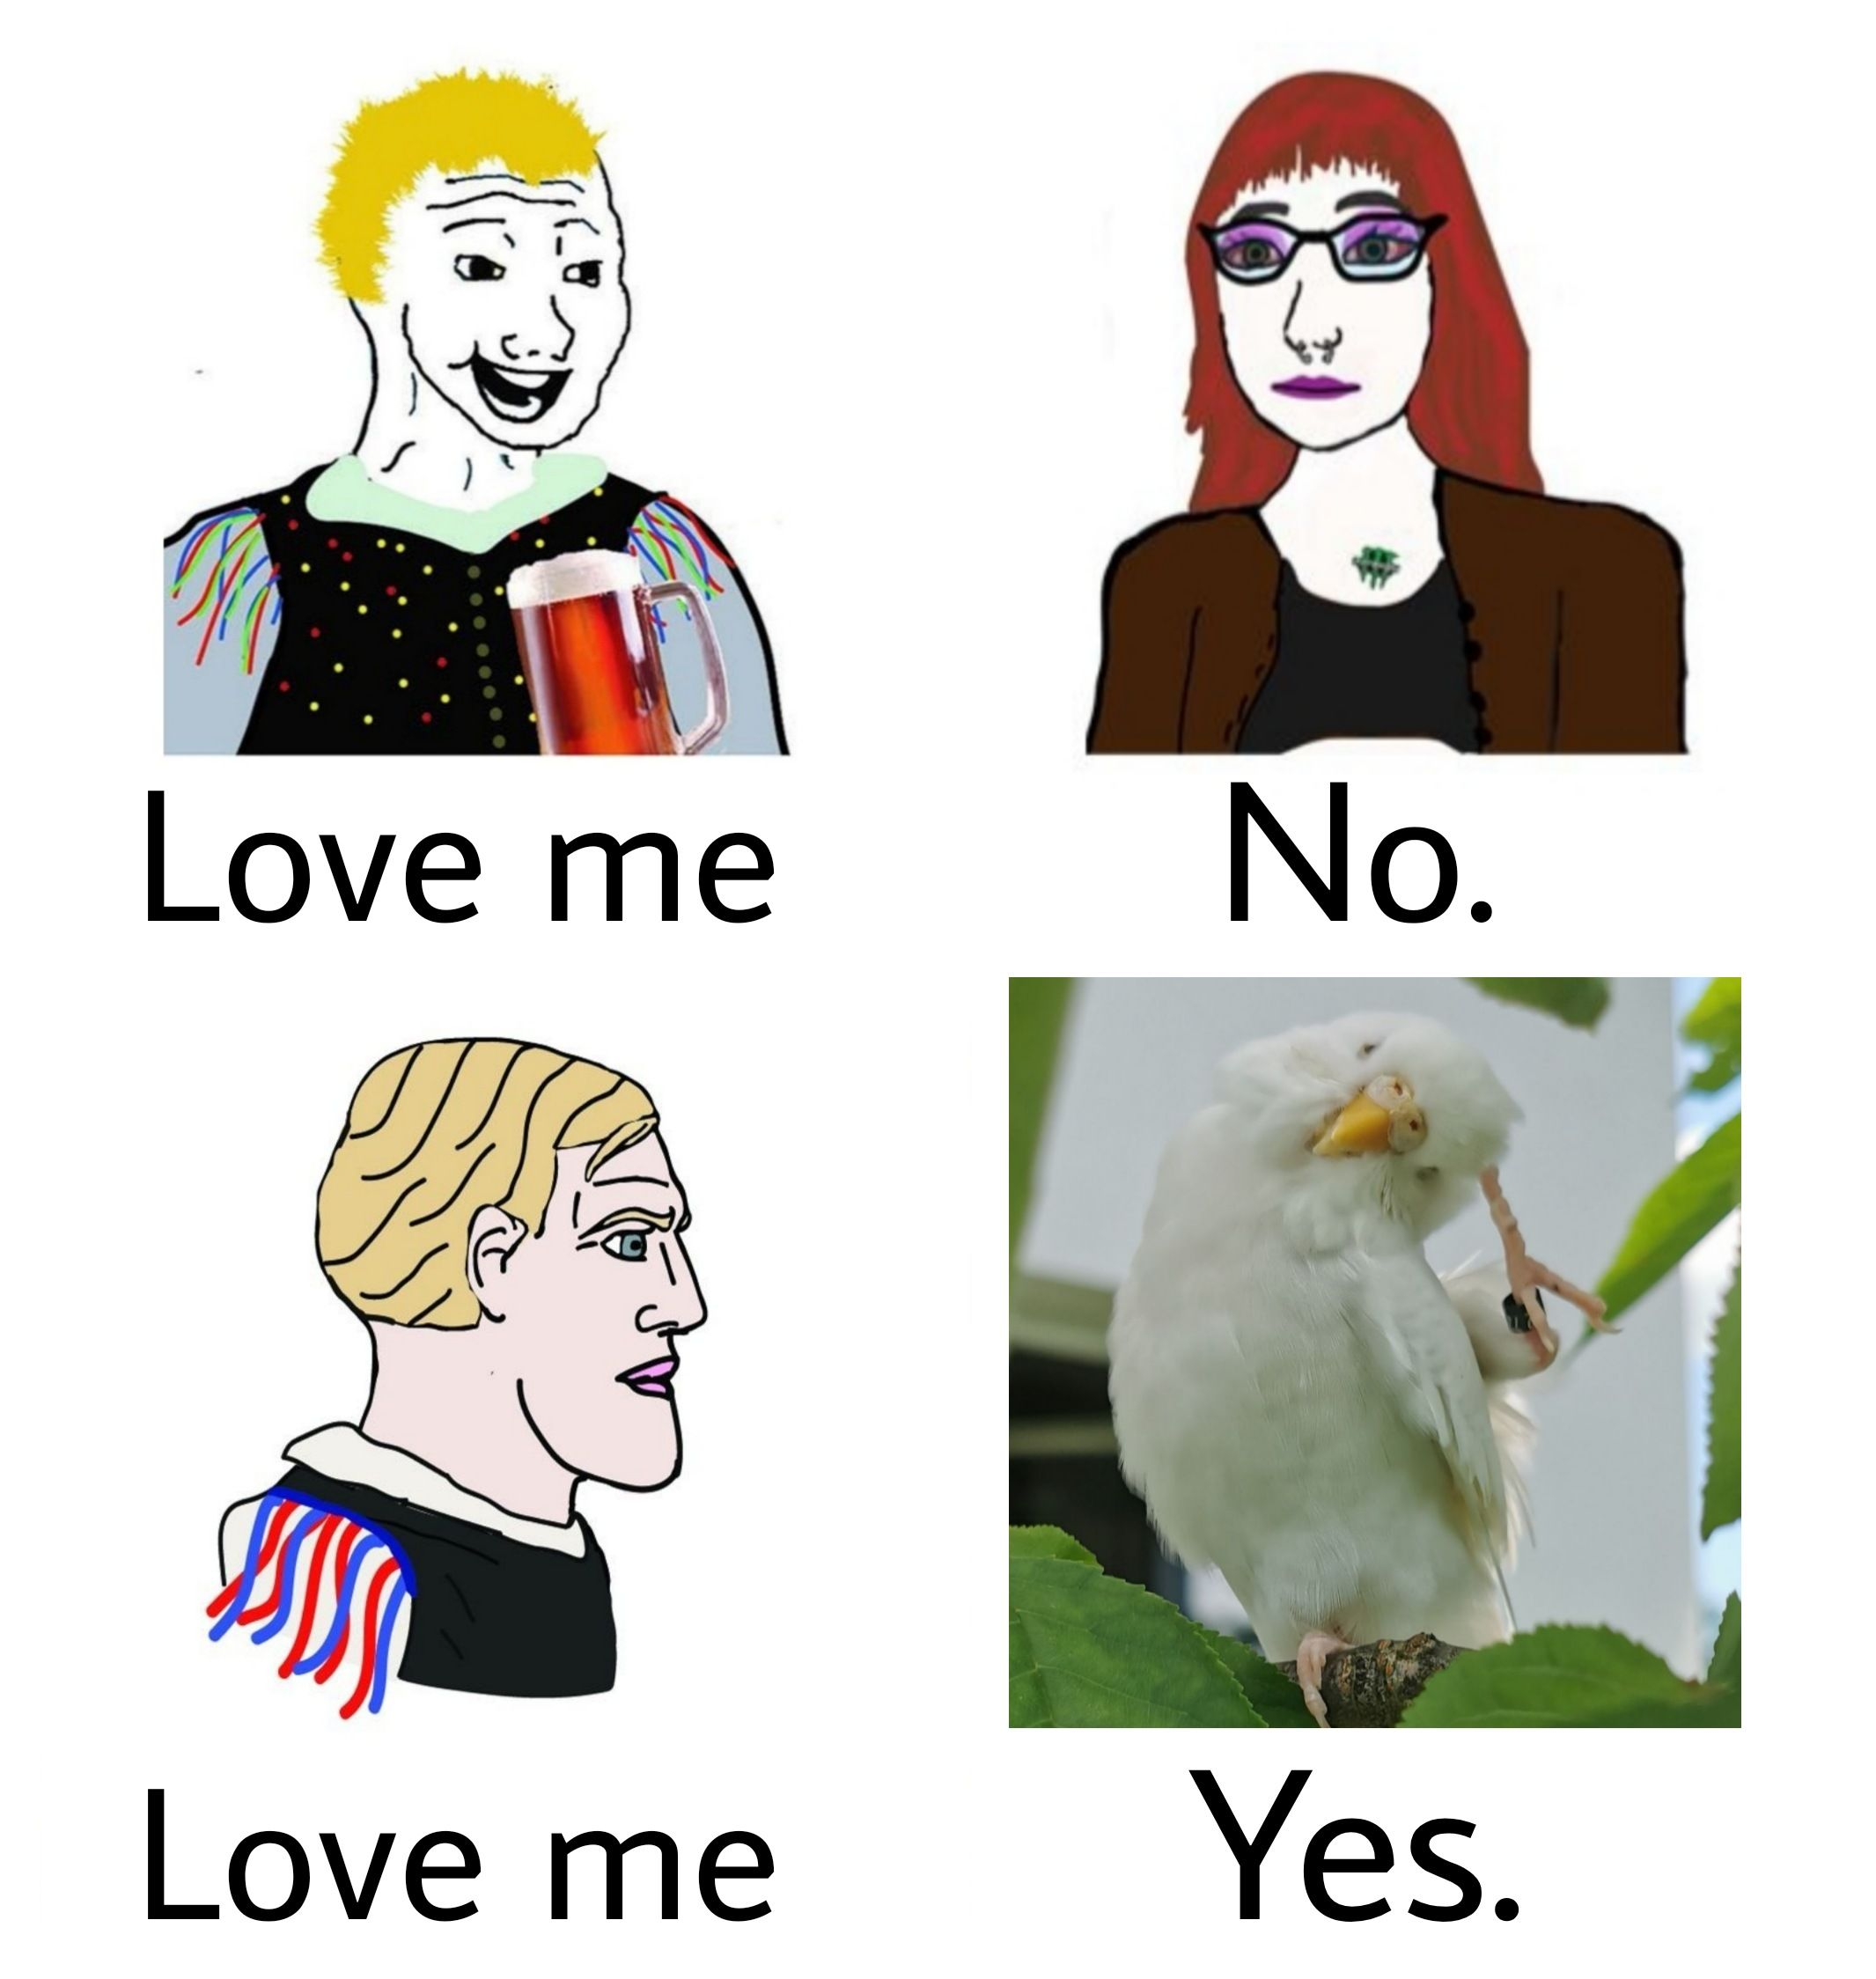 Croissant: A Slovenian Love Story in Four Panels. Also: #slobirb